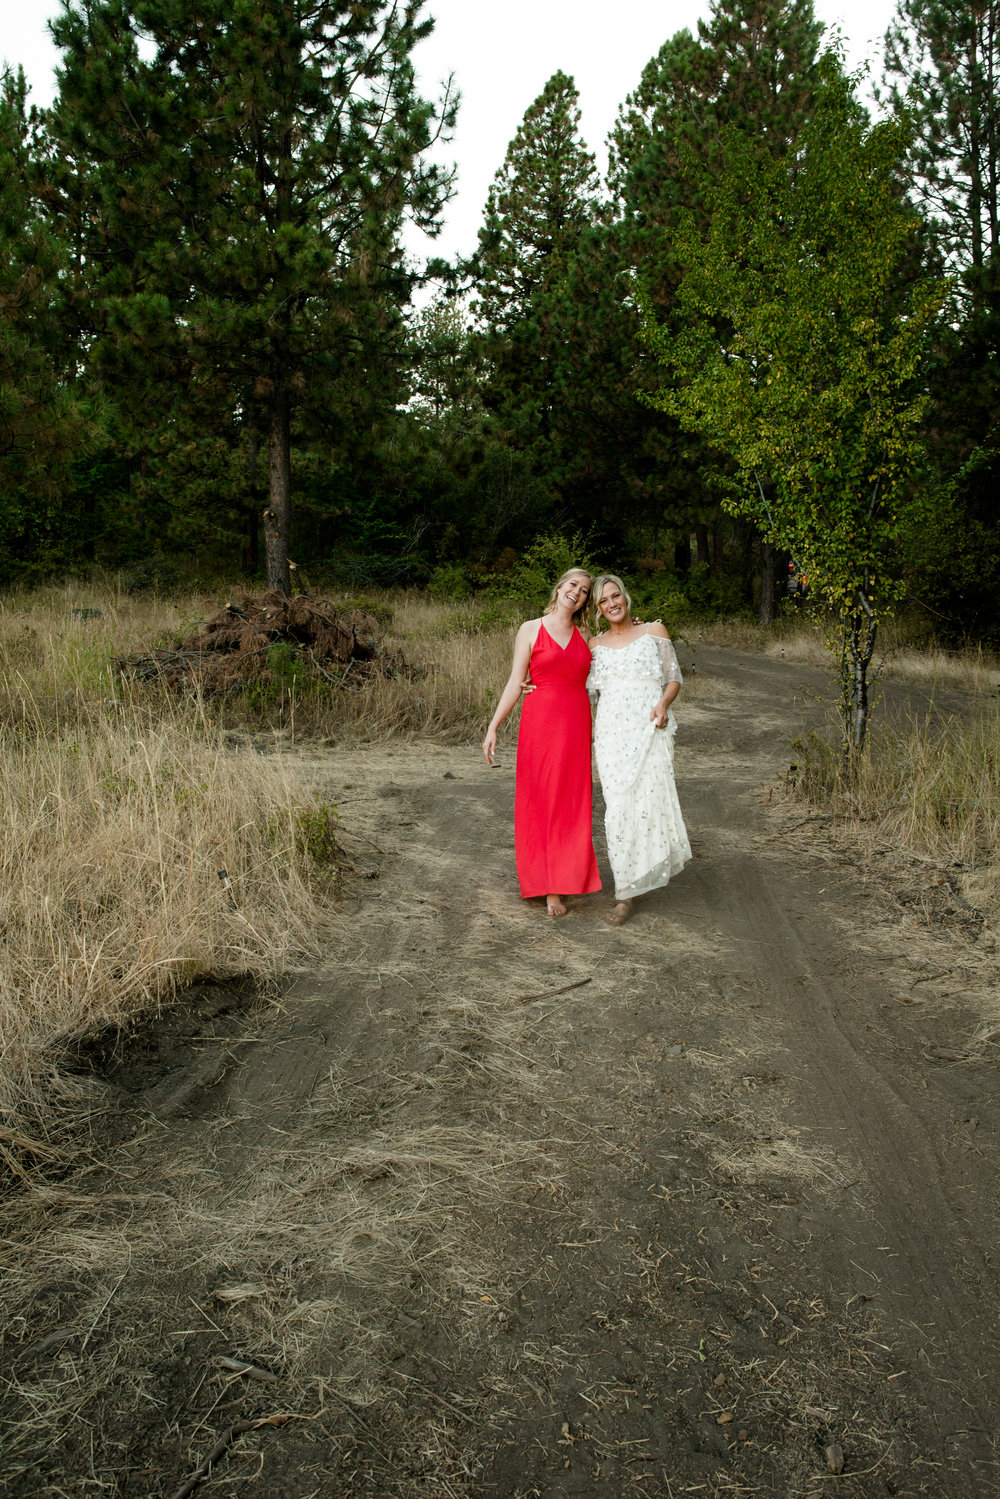 Lana Micah Wedding La Grande Oregon September 2018 Please Credit Talia Jean Galvin (471 of 687).jpg